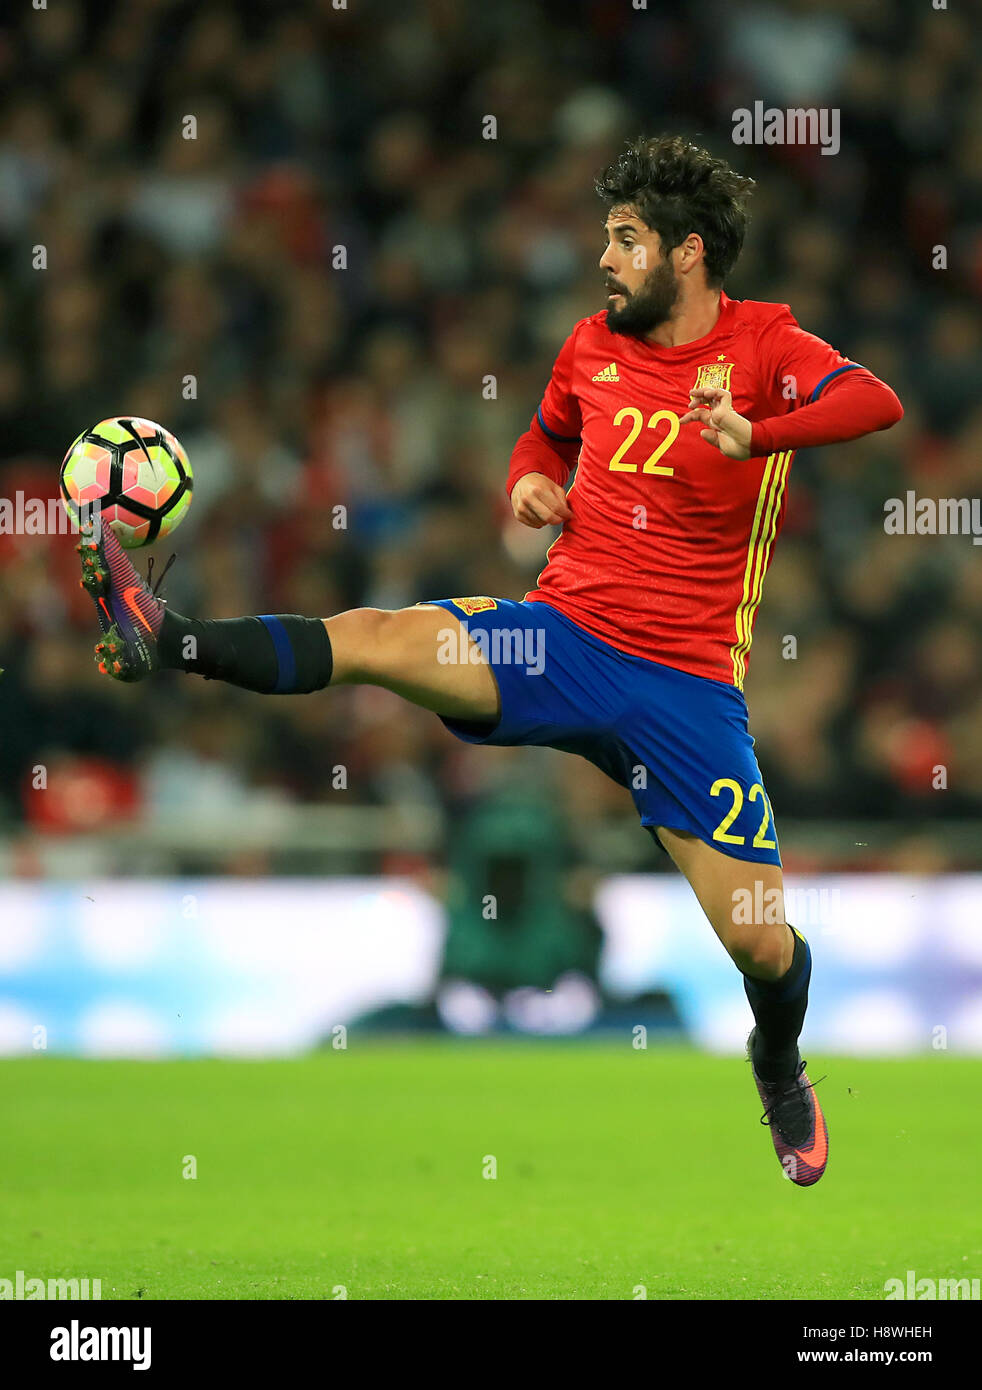 Alarcon Isco Spain Stock Royalty Free Image Alamy